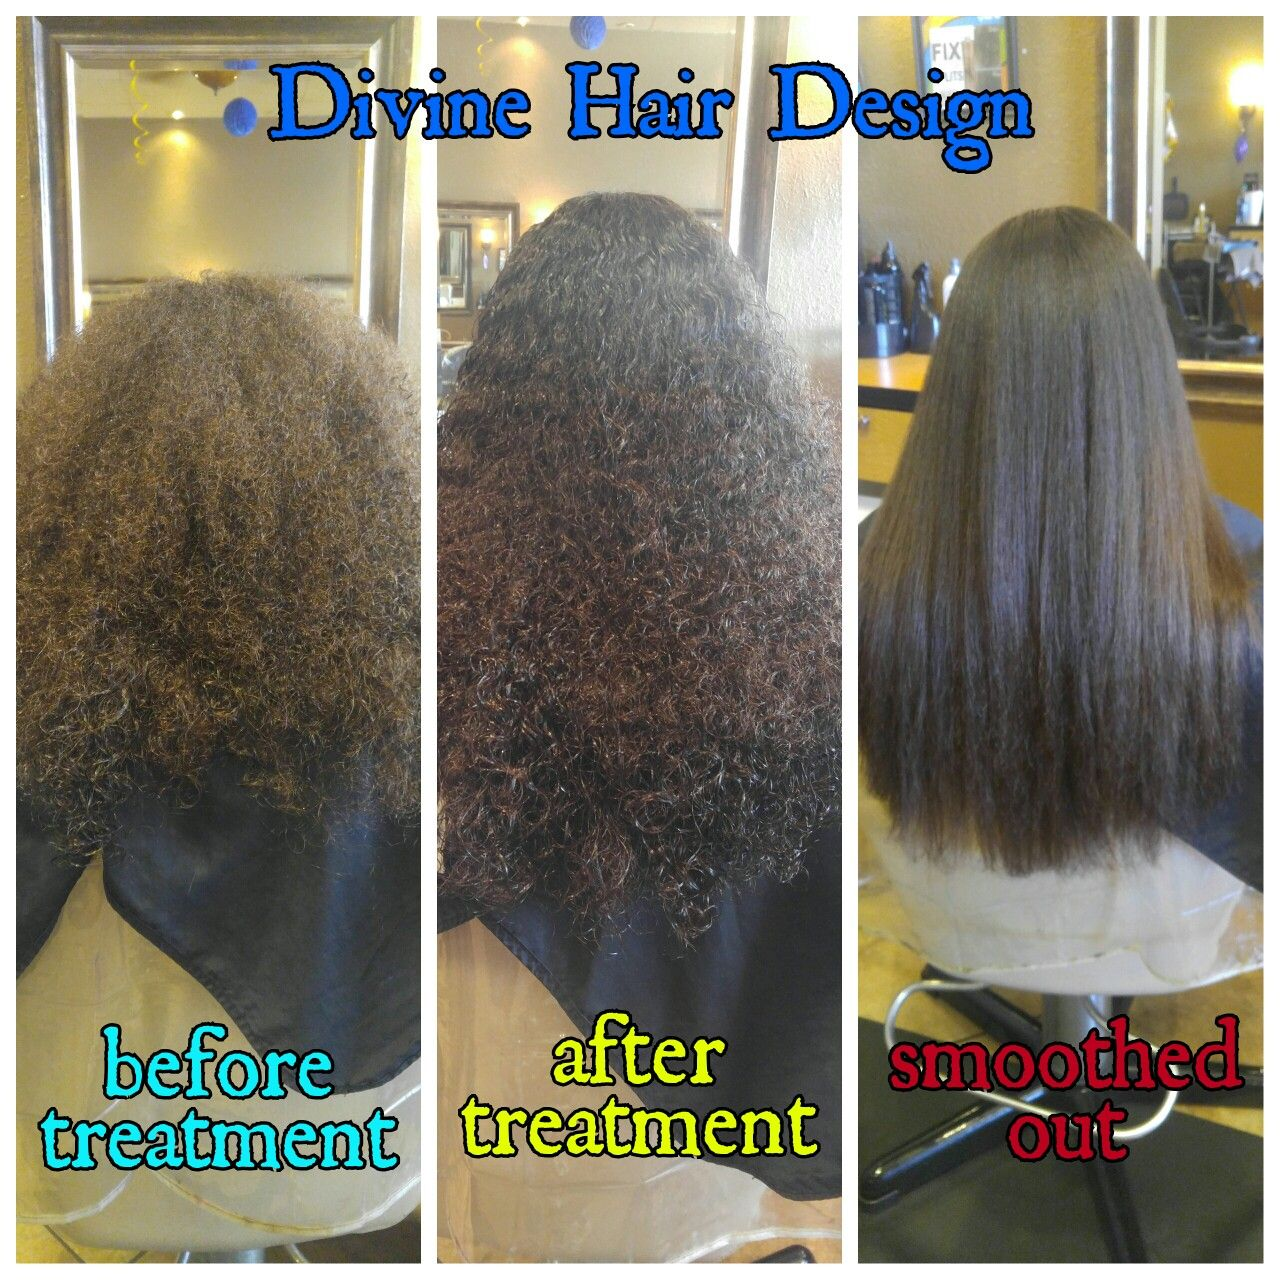 Brazilian Blowout On Very Curly Hair Before And After Blowout Hair Brazilian Blowout Curly Hair Care